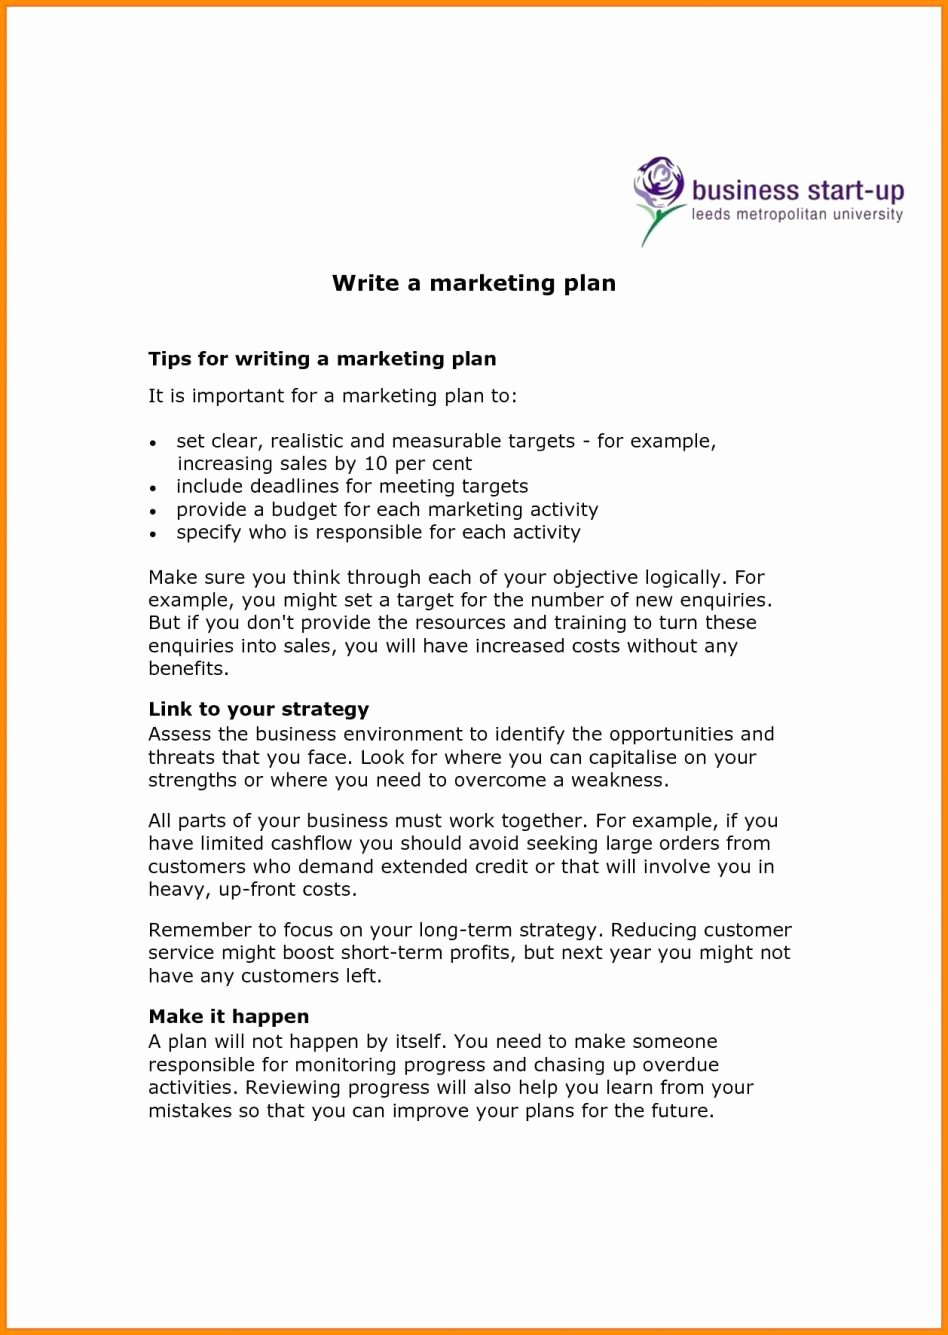 Franchise Business Plan Template New Business Plan Samples for Franchise Store Example